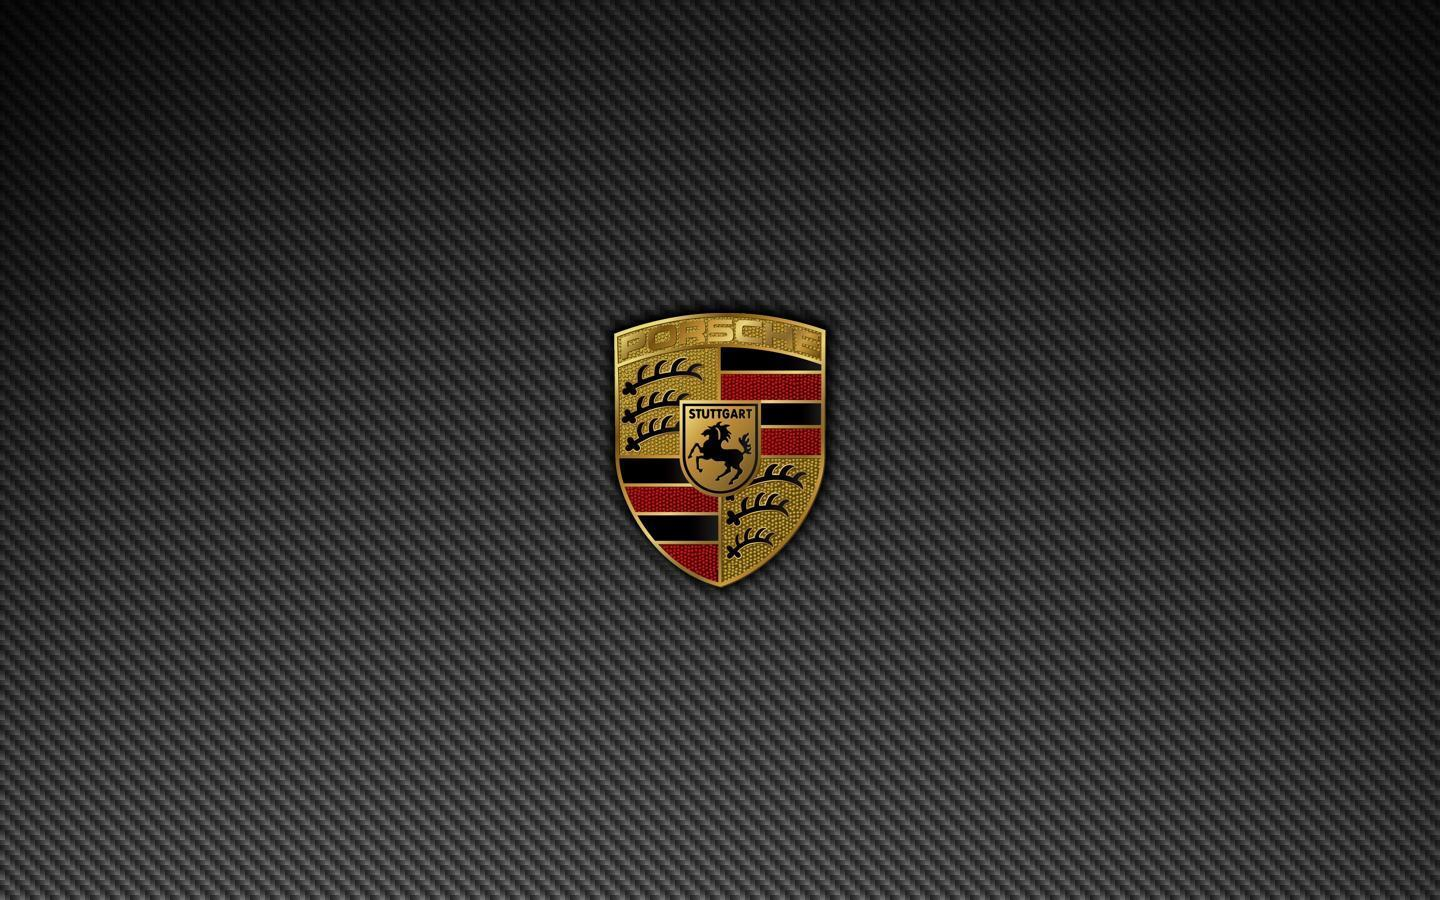 Porsche Images Porsche Logo Hd Wallpaper And Background